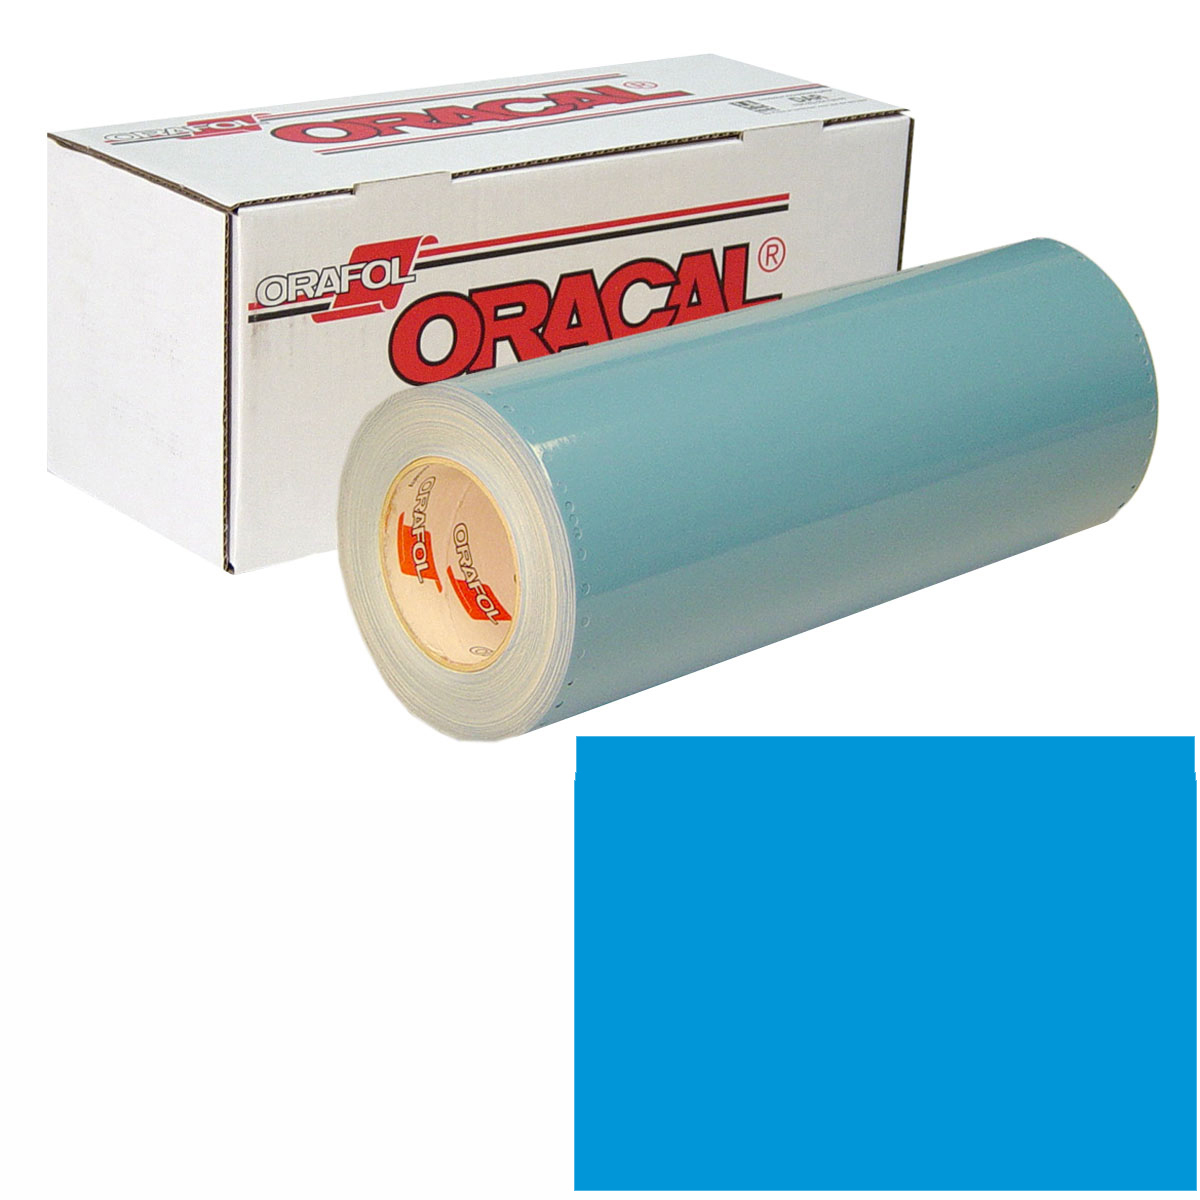 ORACAL 751 15in X 50yd 052 Azure Blue